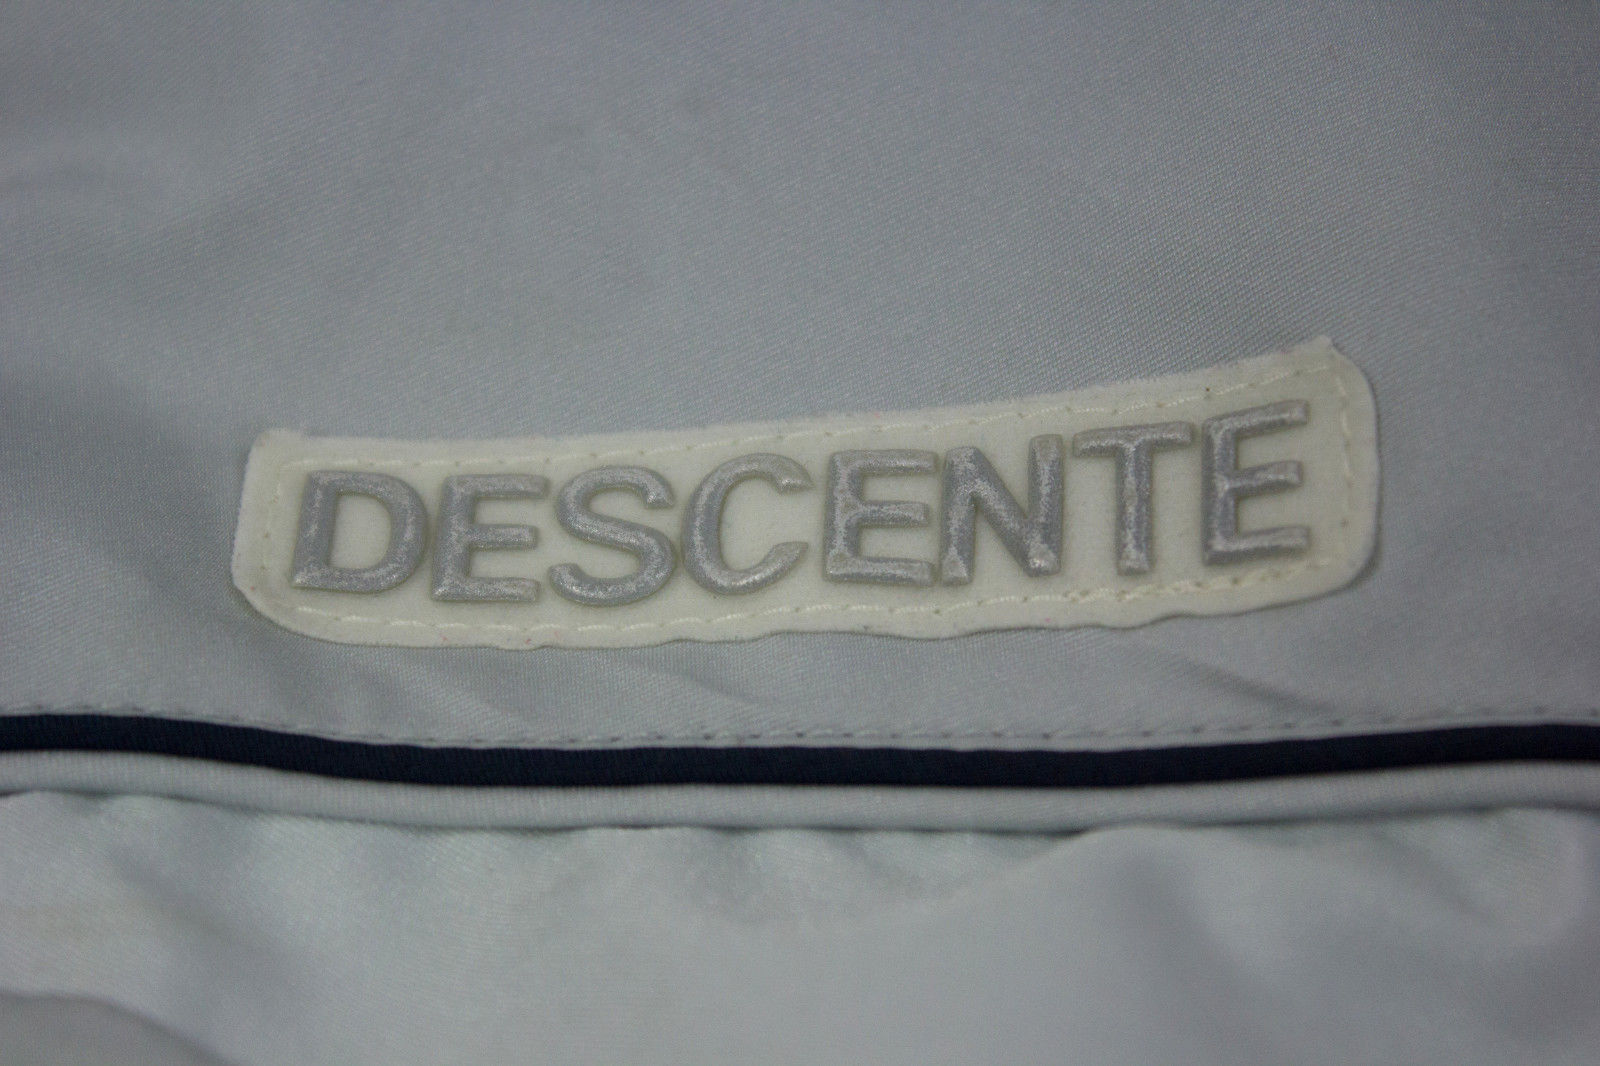 DESCENTE Ski Jacket SIZE S, US 6, EU 36 - secondfirst